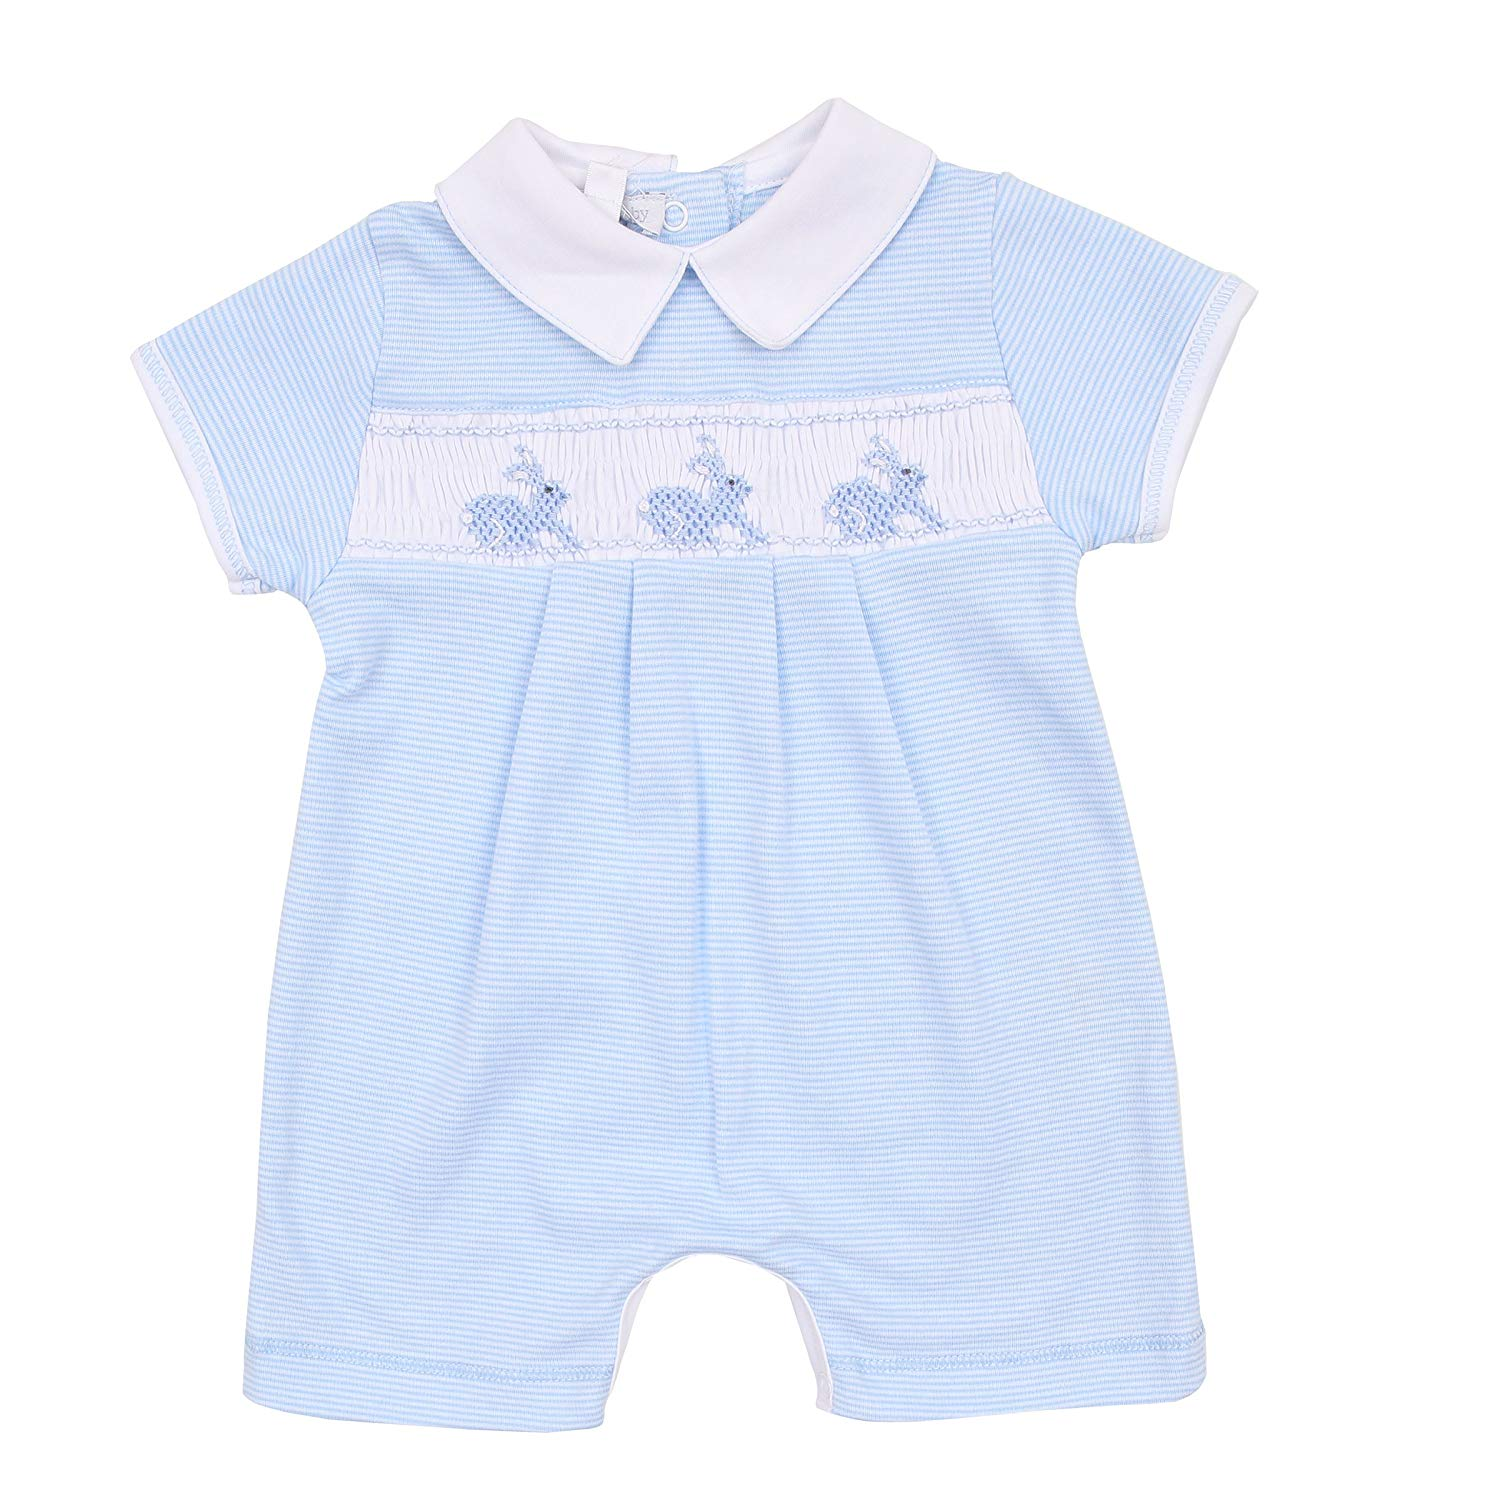 a937fb005778 Get Quotations · Magnolia Baby Baby Boy Classic Little Bunny Smocked  Collared Short Playsuit Blue